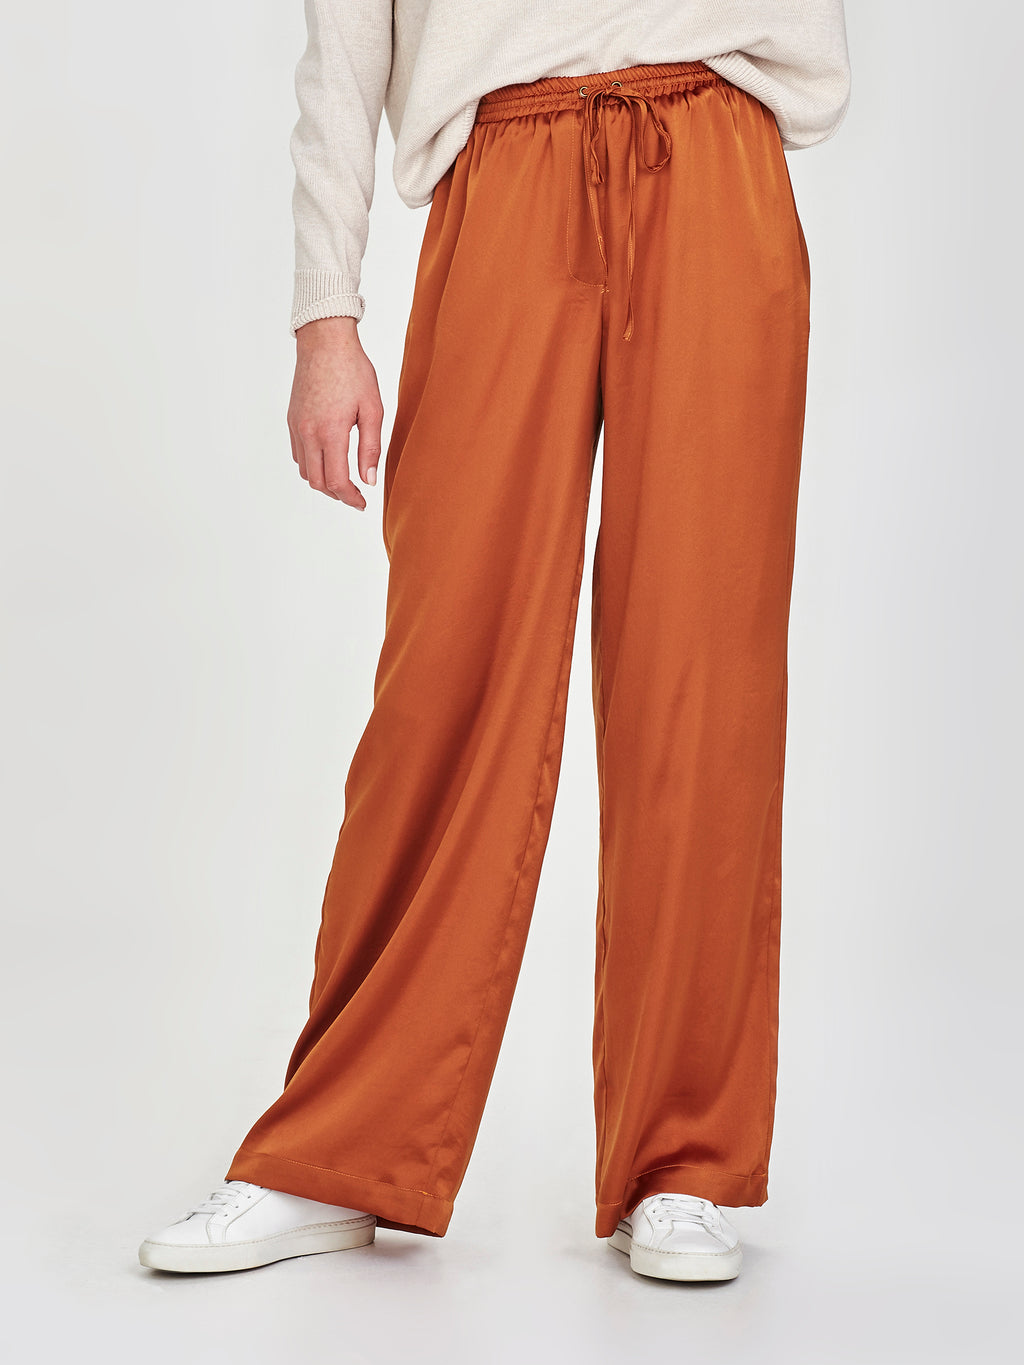 Polly Pant (Satin Triacetate) Gold